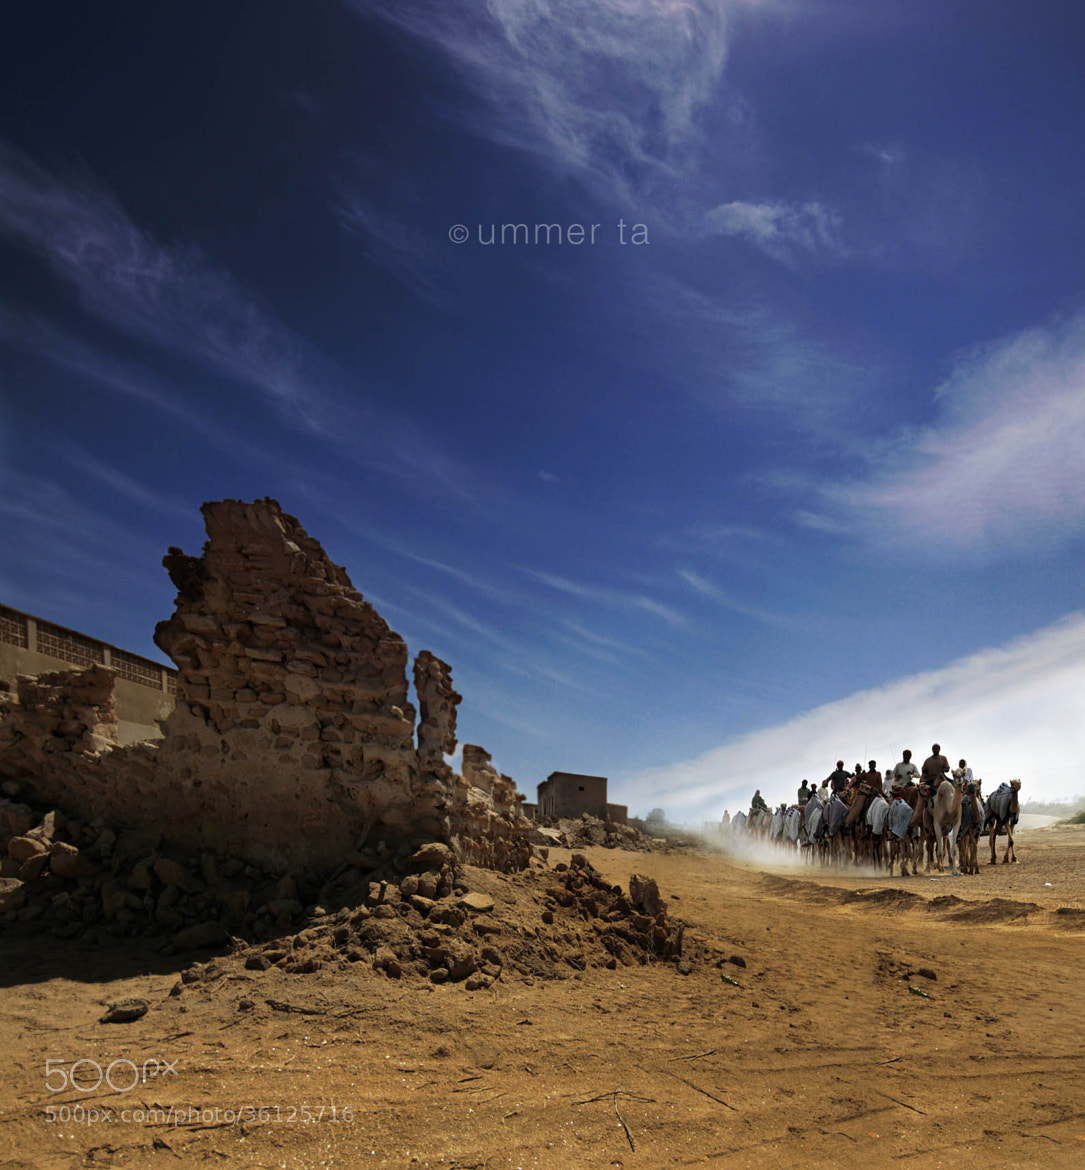 Photograph camel ride in village by Artist Ummer Ta  on 500px